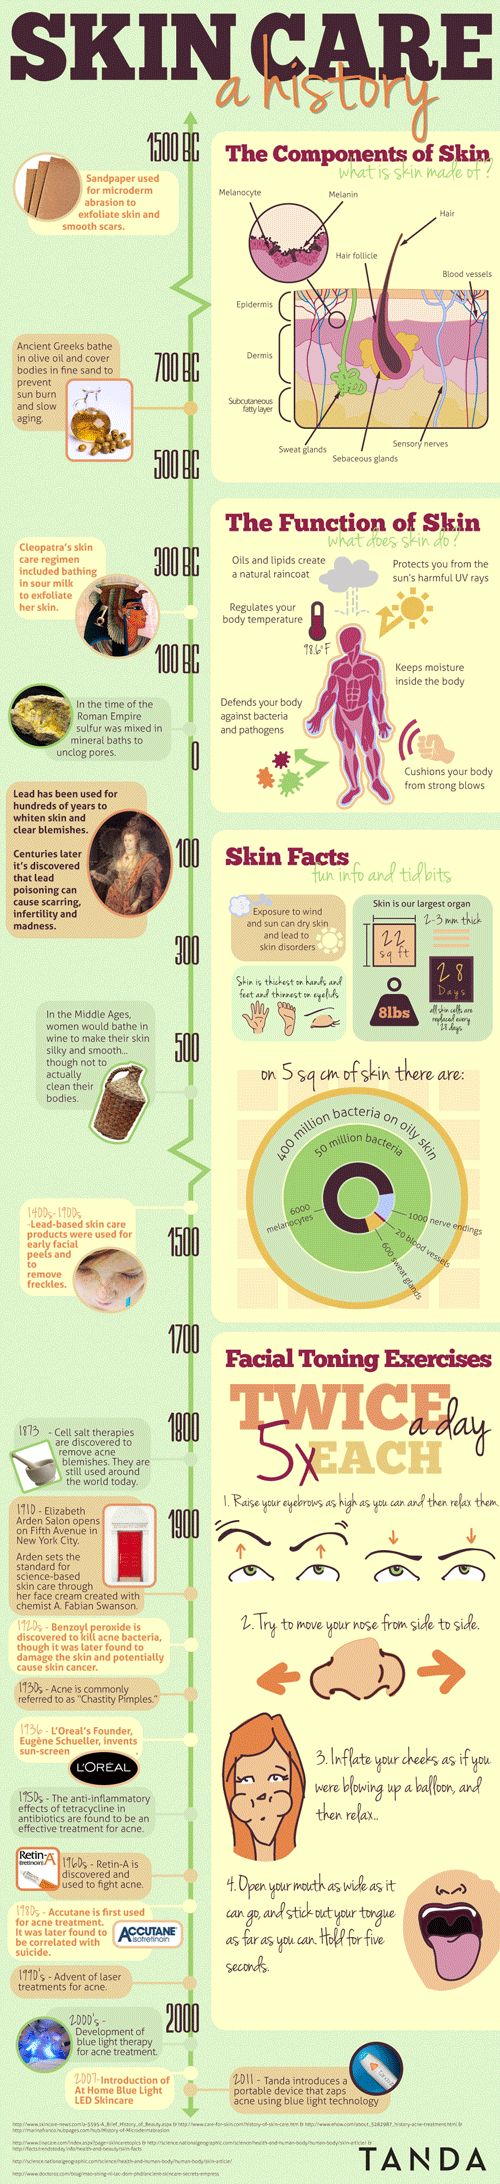 Skin care history